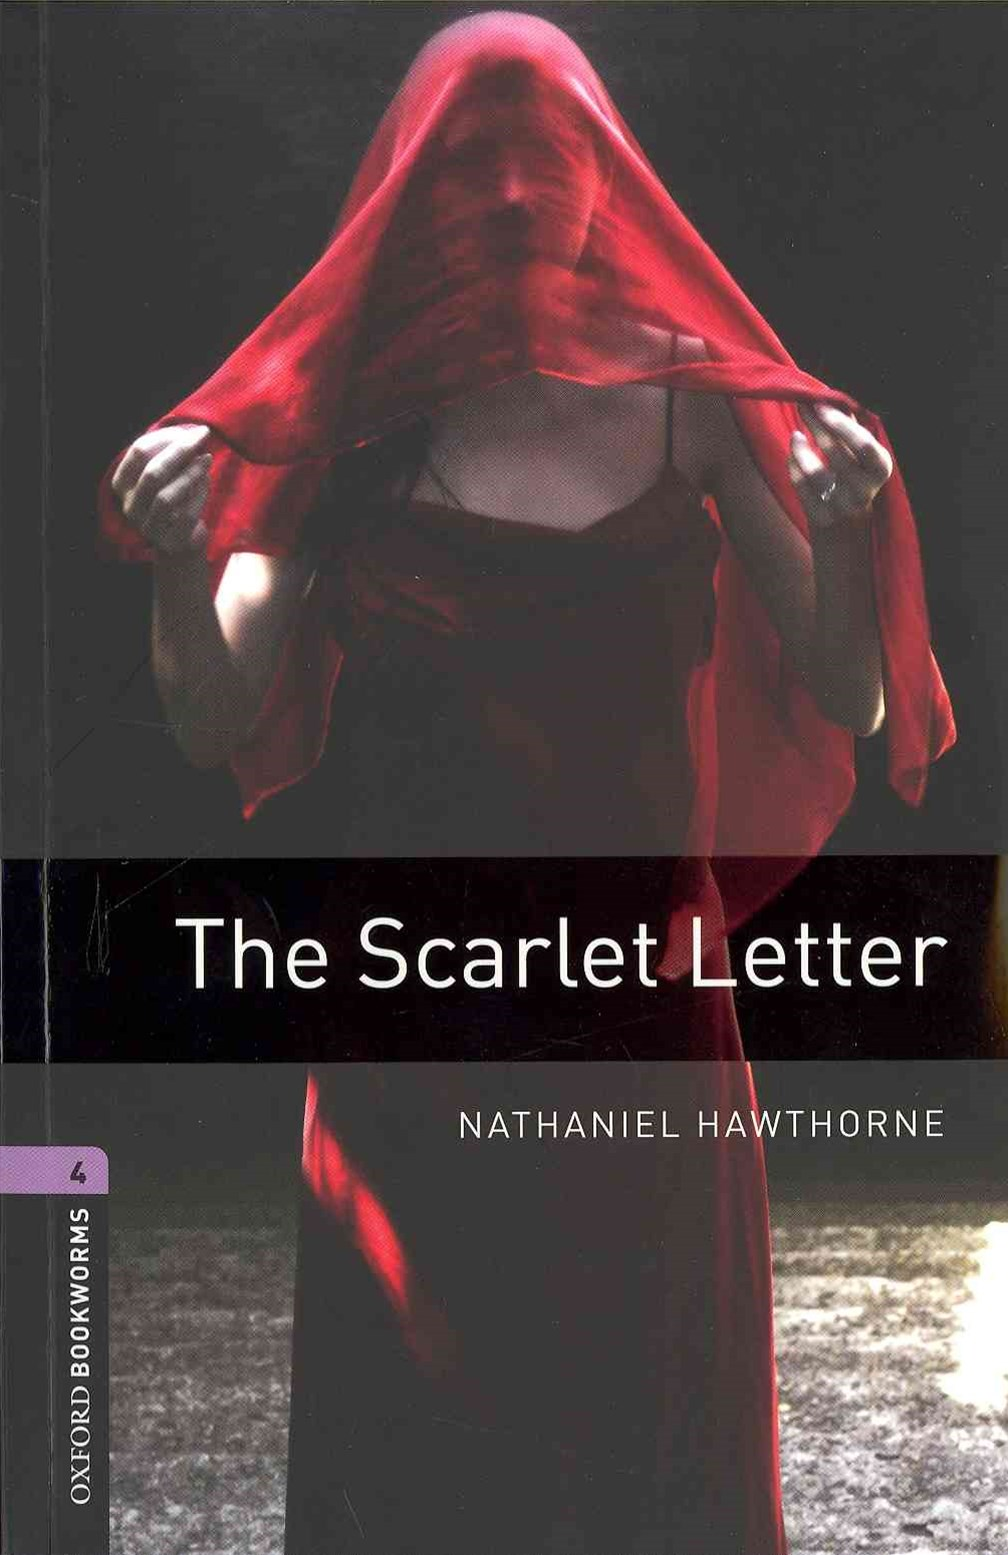 Oxford Bookworms Library Level 4 The Scarlet Letter